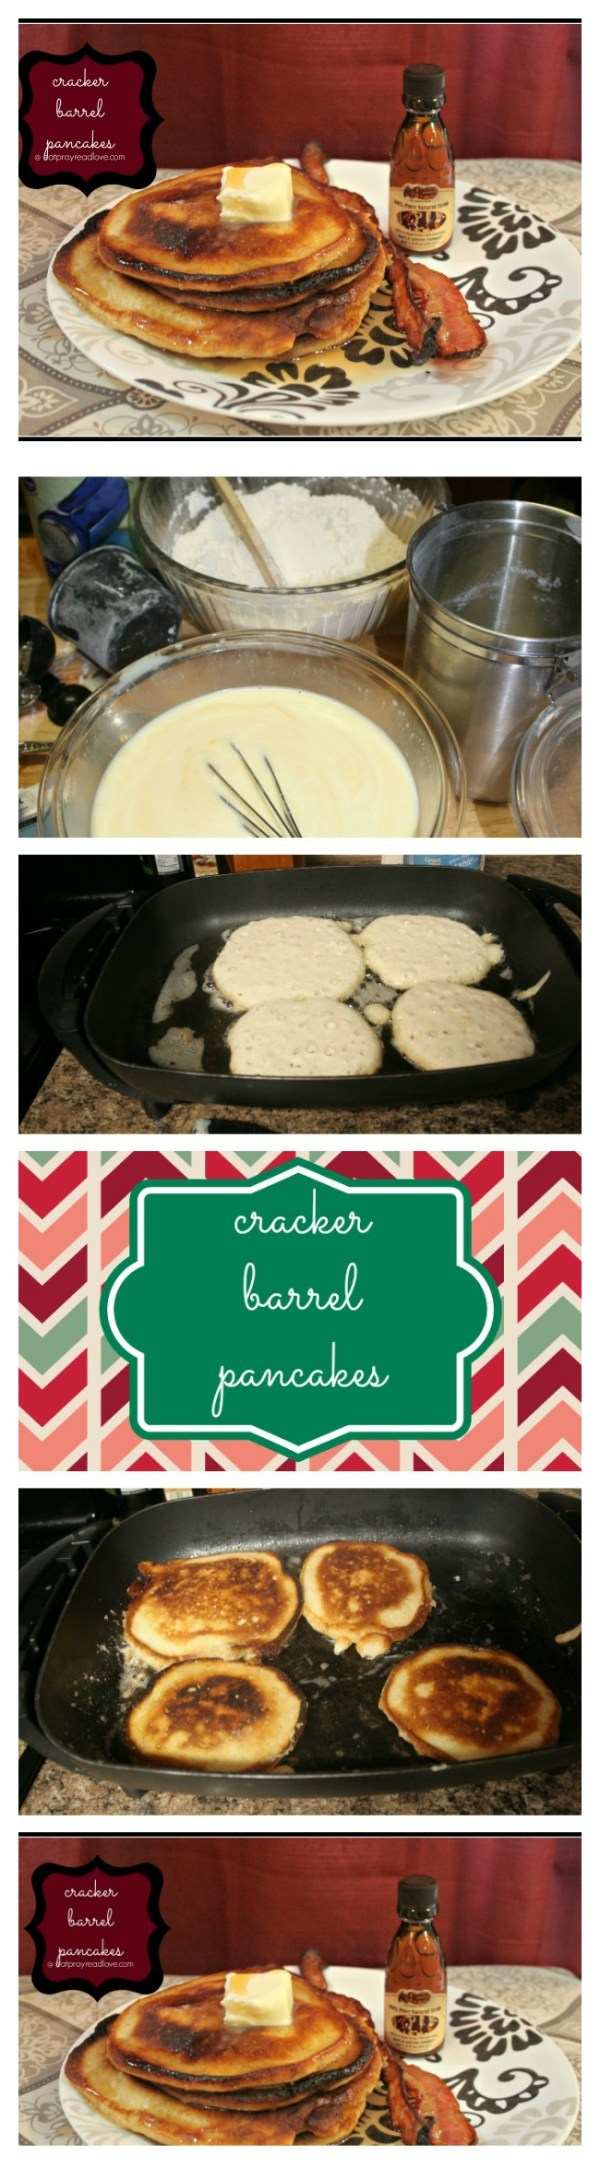 cracker barrel pancakes Collage